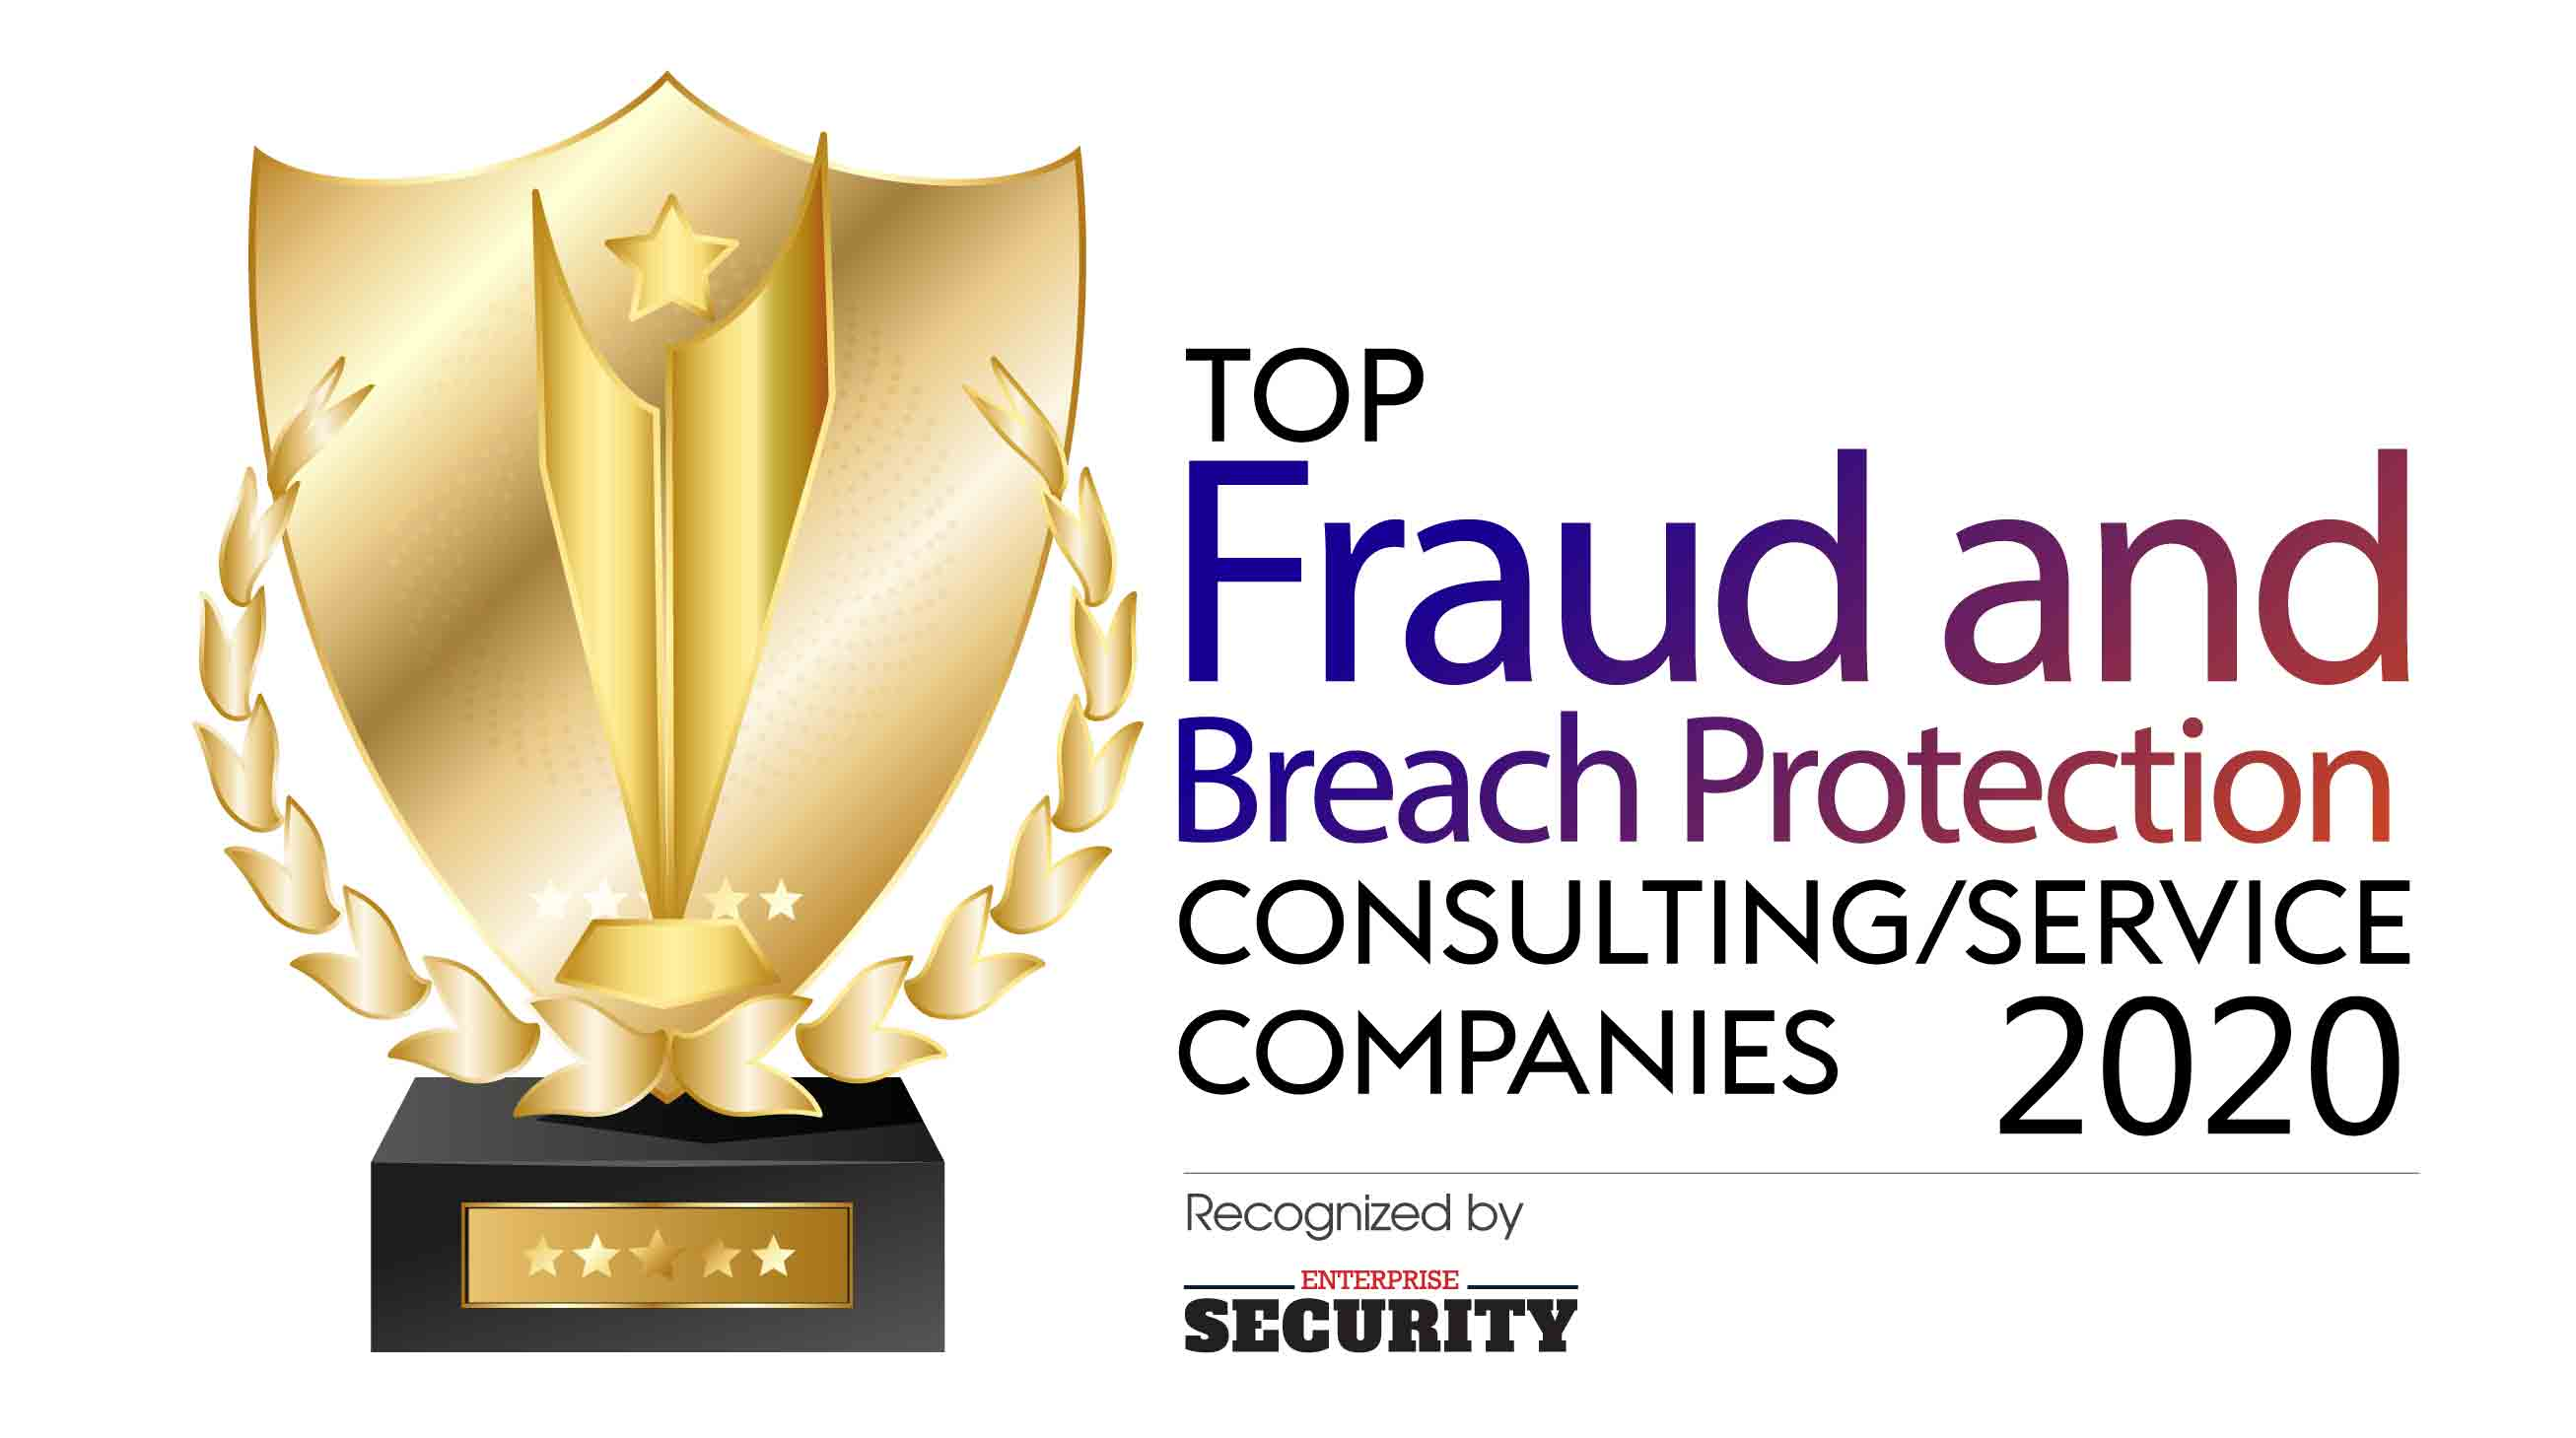 Top 10 Fraud and Breach Protection Consulting/Service Companies - 2020